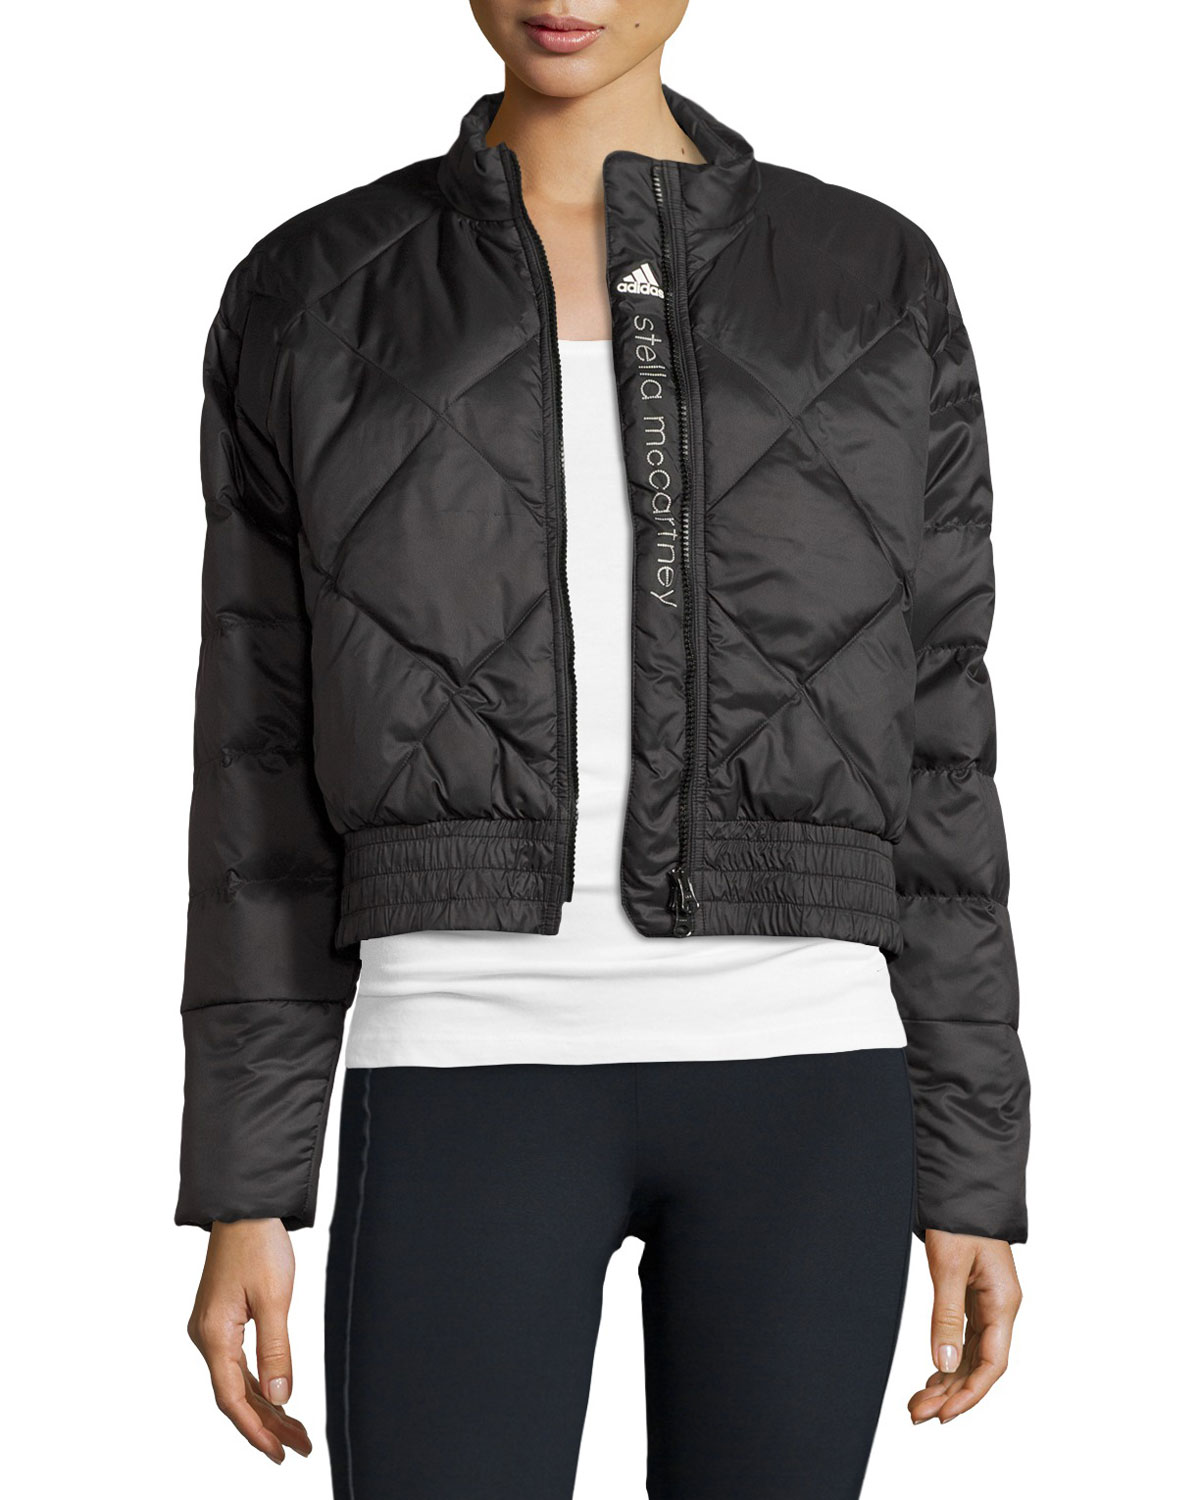 reputable site f8a2c 856f1 adidas by Stella McCartney Essentials Quilted Jacket, Black